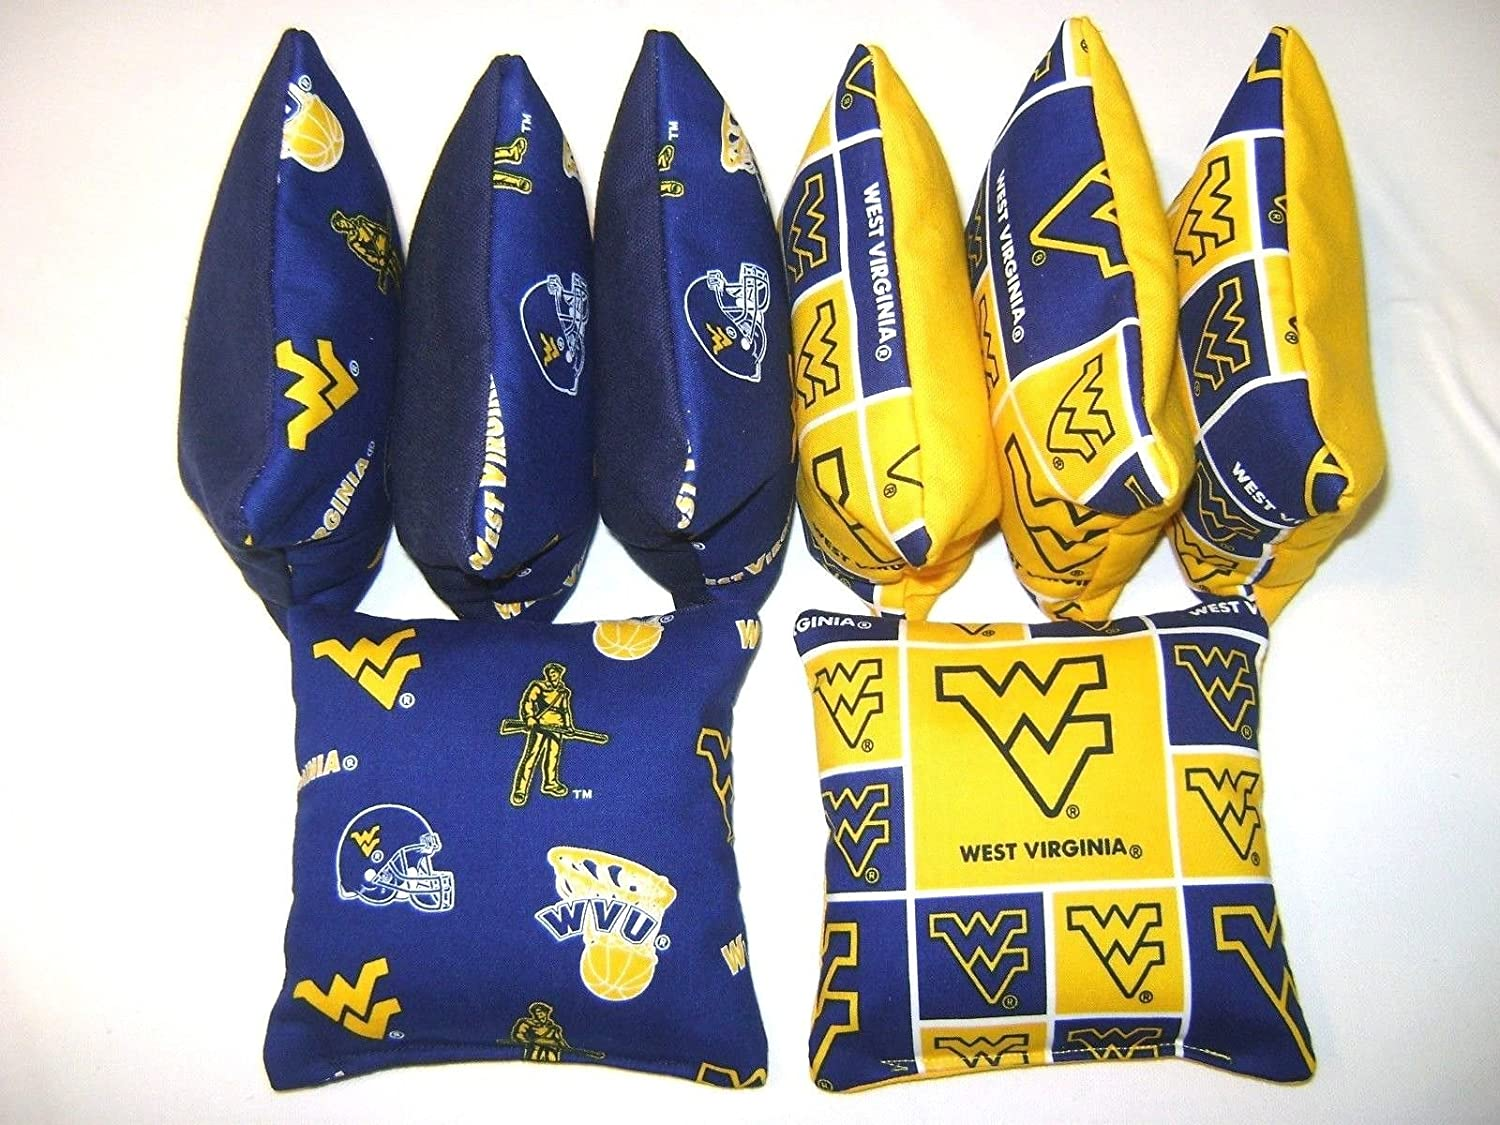 WV West Virginia Embroidered Cornhole Corn Hole Bags With Storage Bag